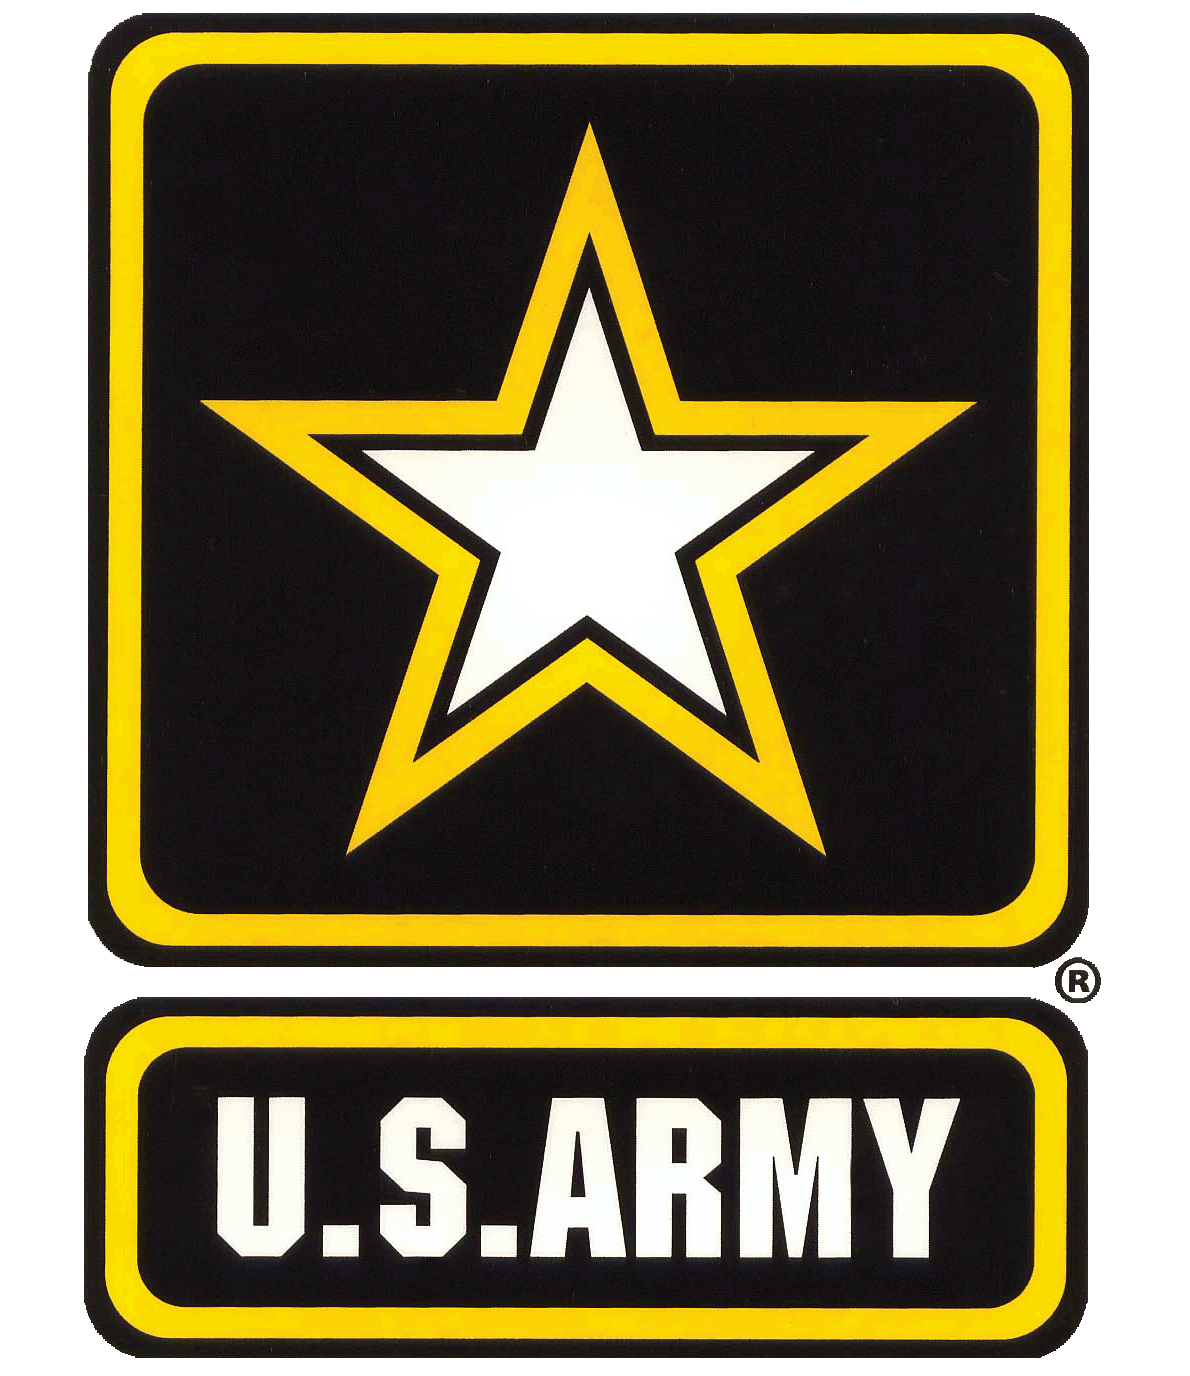 Army logo png. Afc transportation us